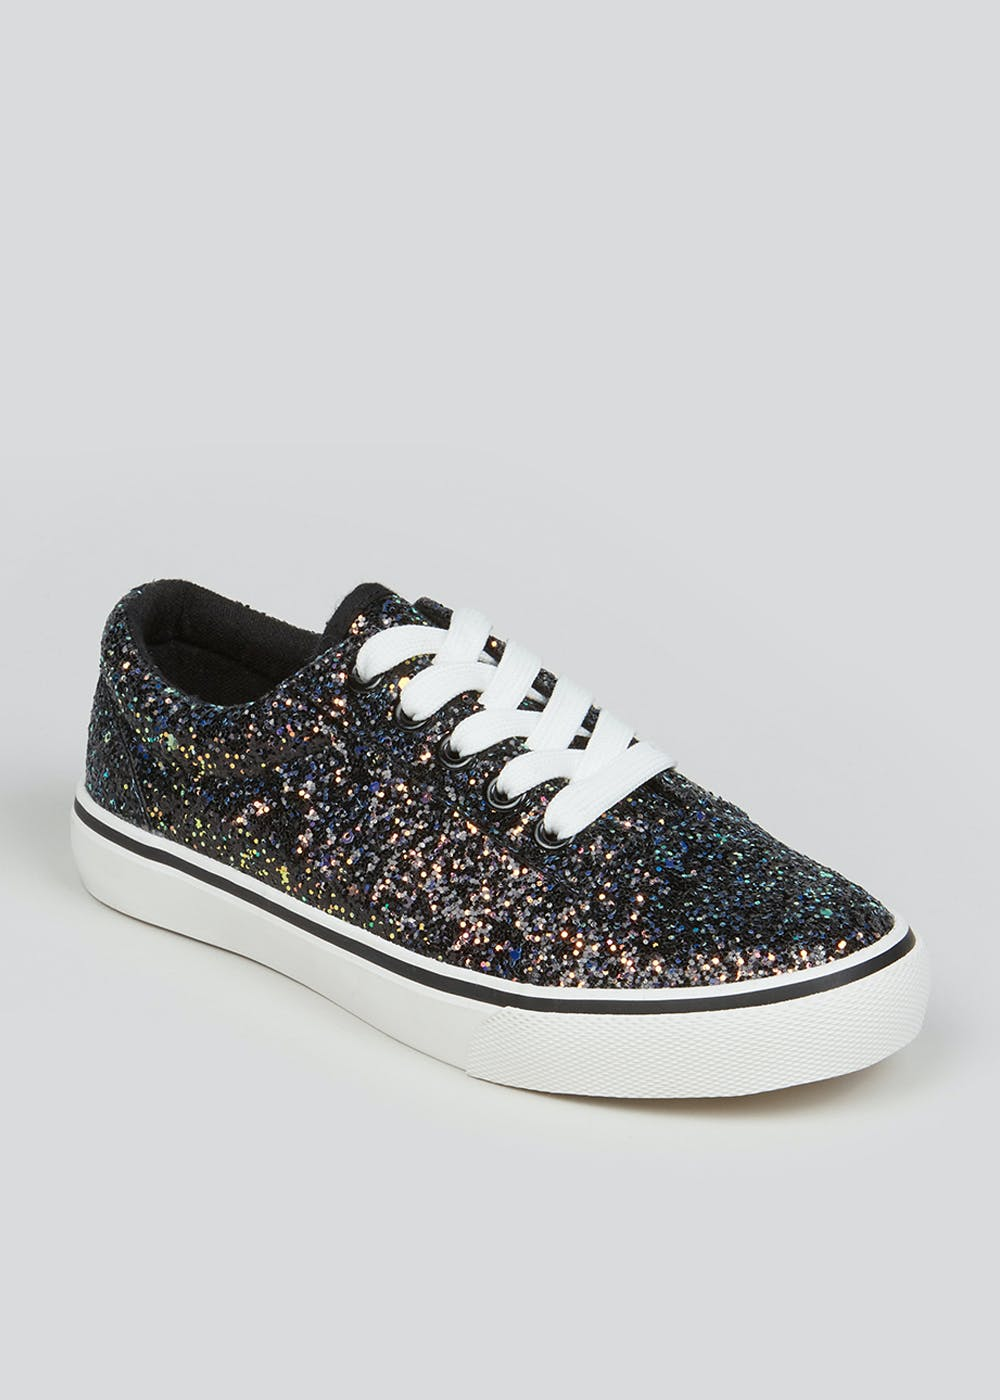 Girls Black Glitter Lace Up Trainers